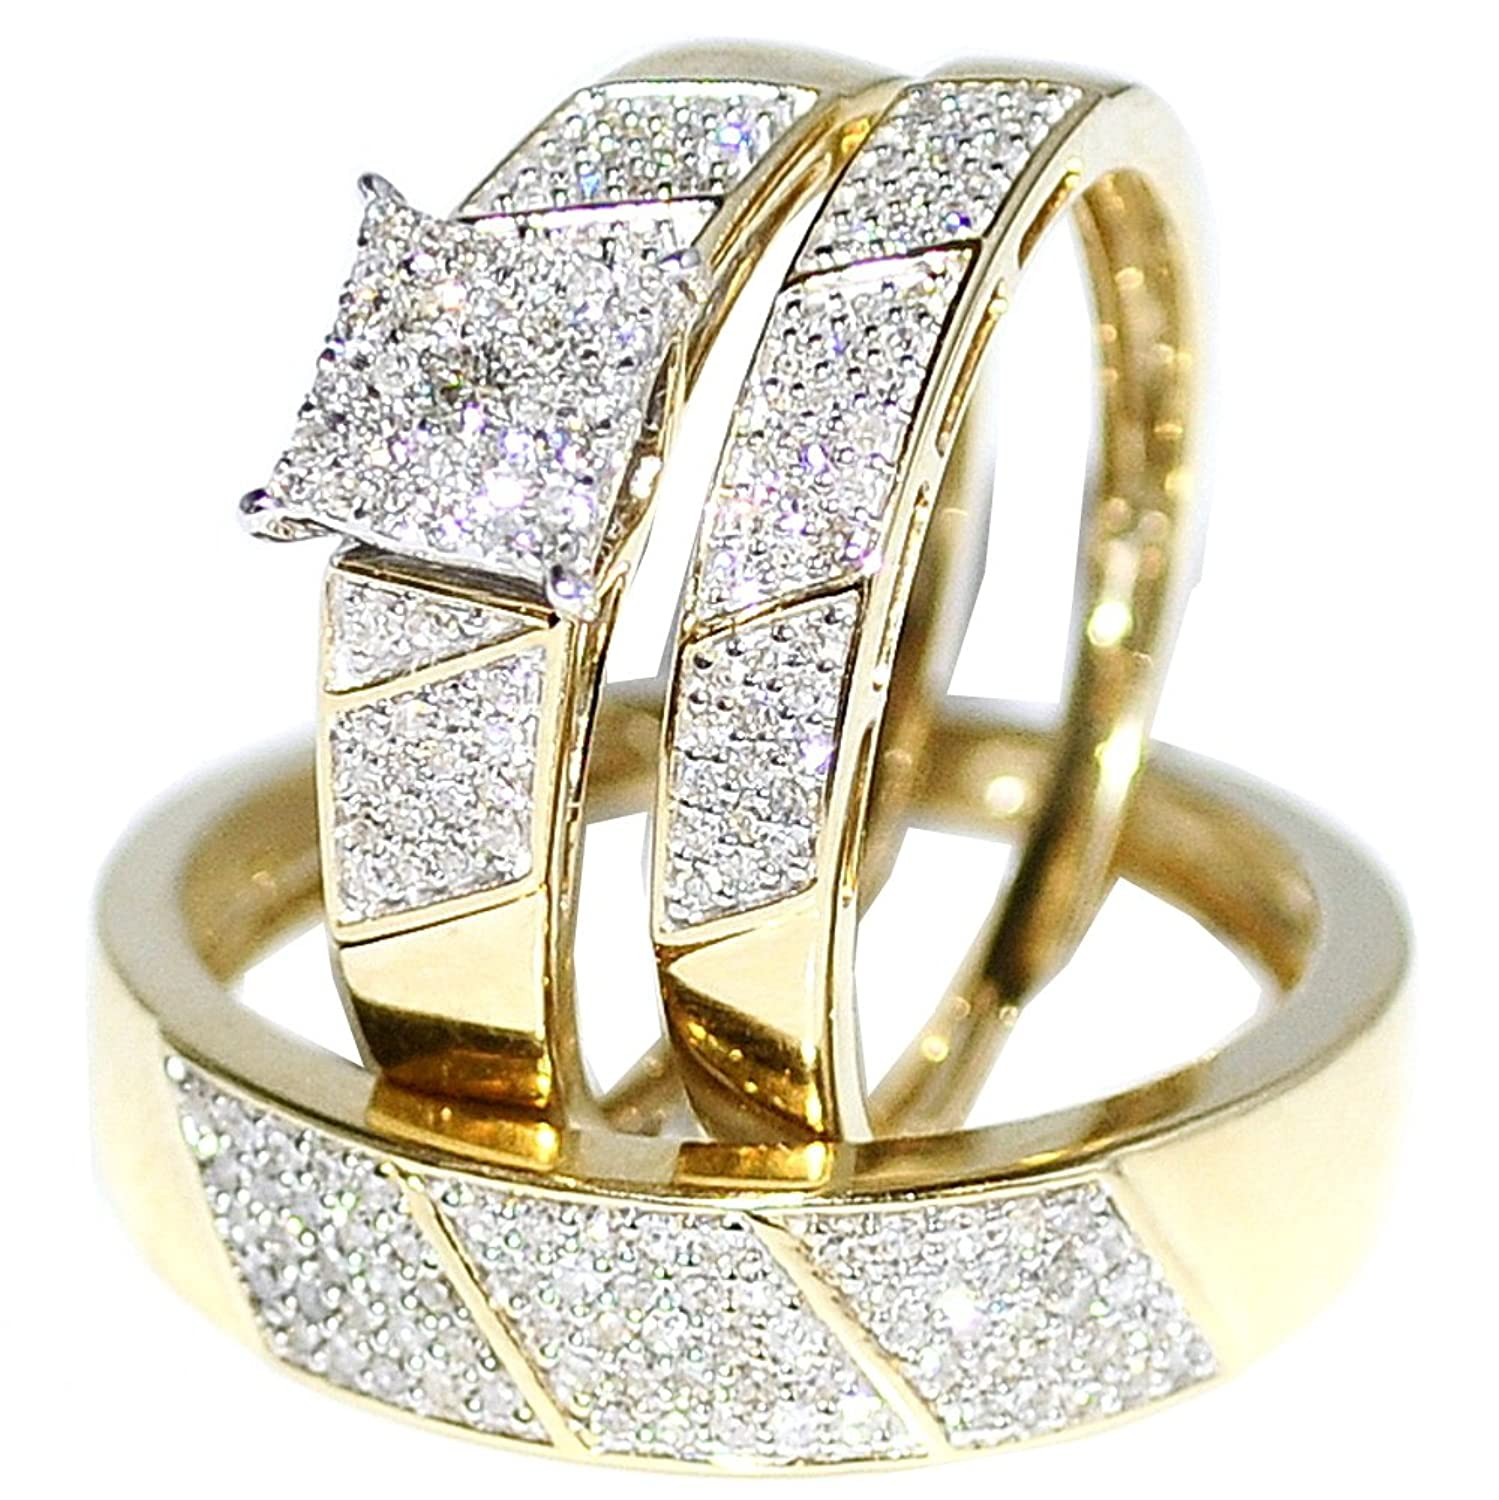 amazoncom his her wedding rings set trio men women 10k yellow gold jewelry